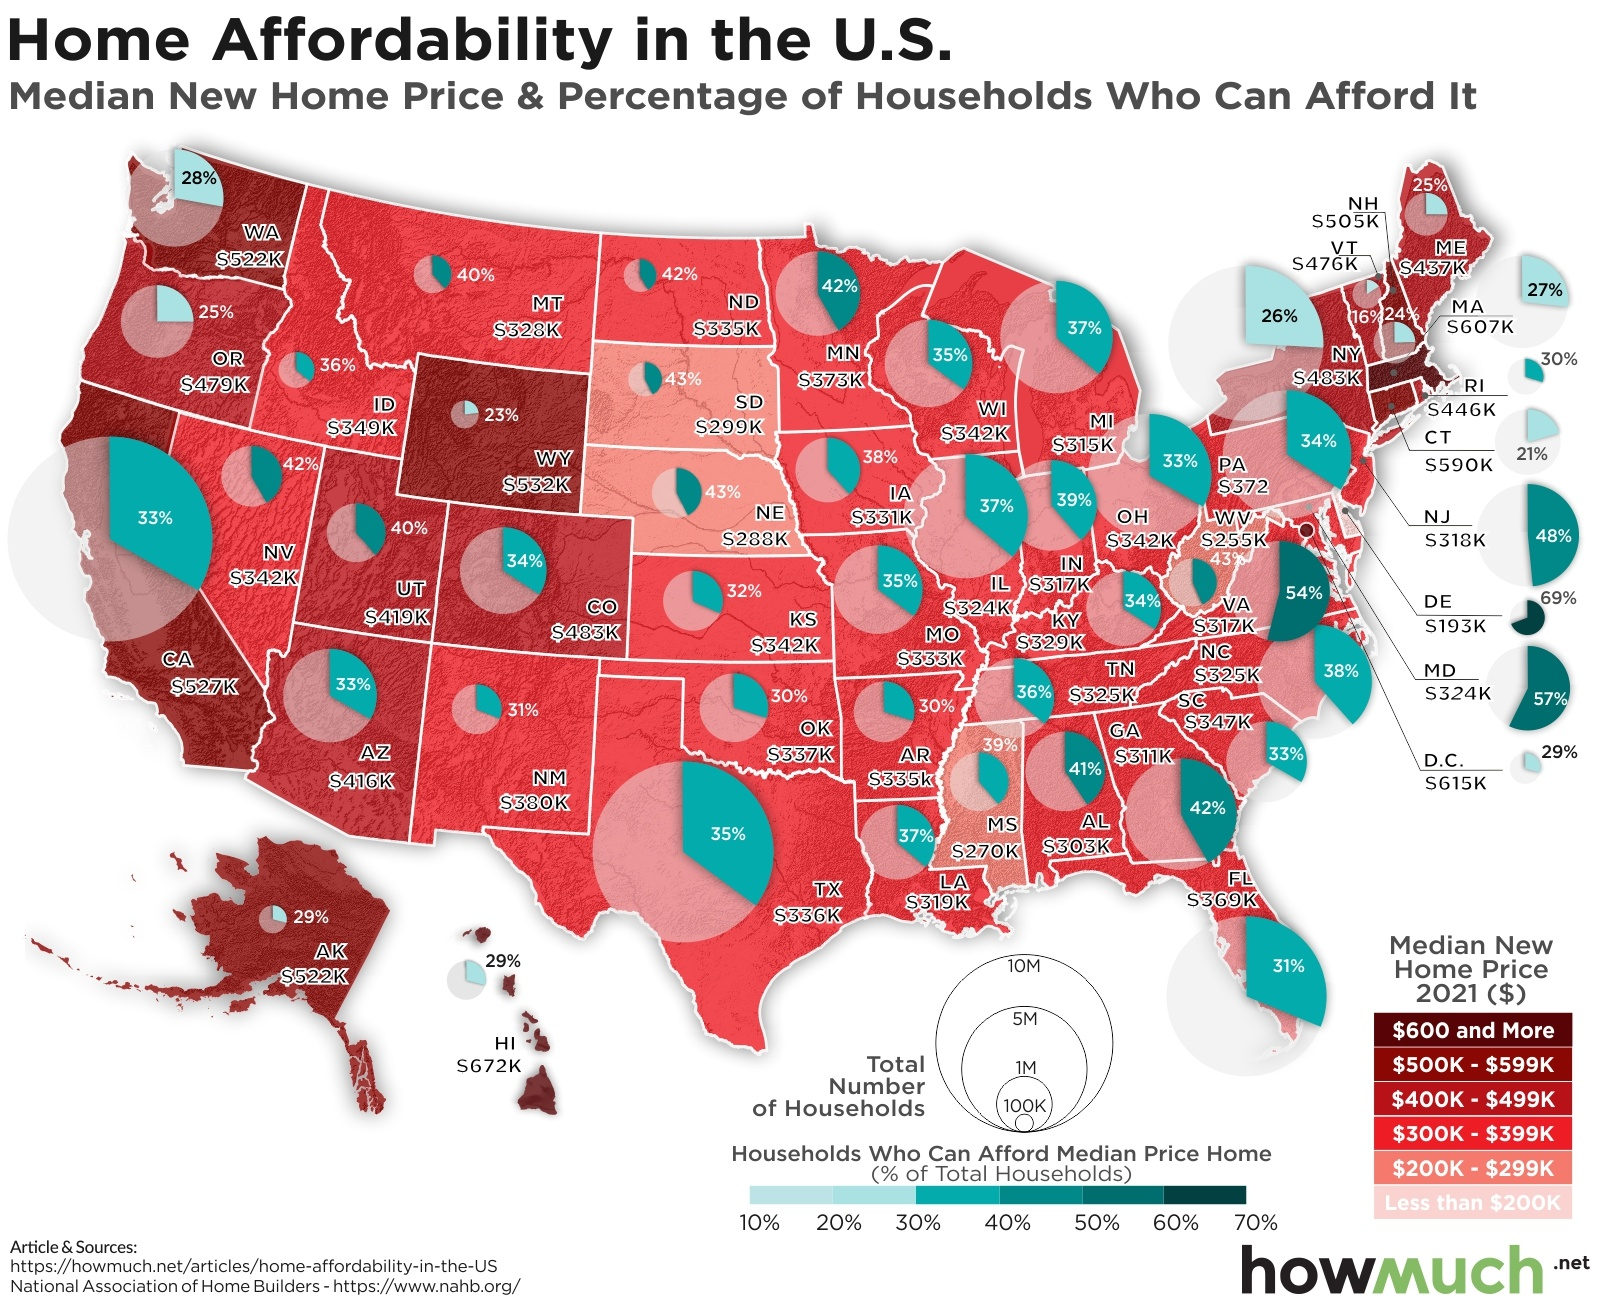 US Housing Market: Affordable States in the US for a New House